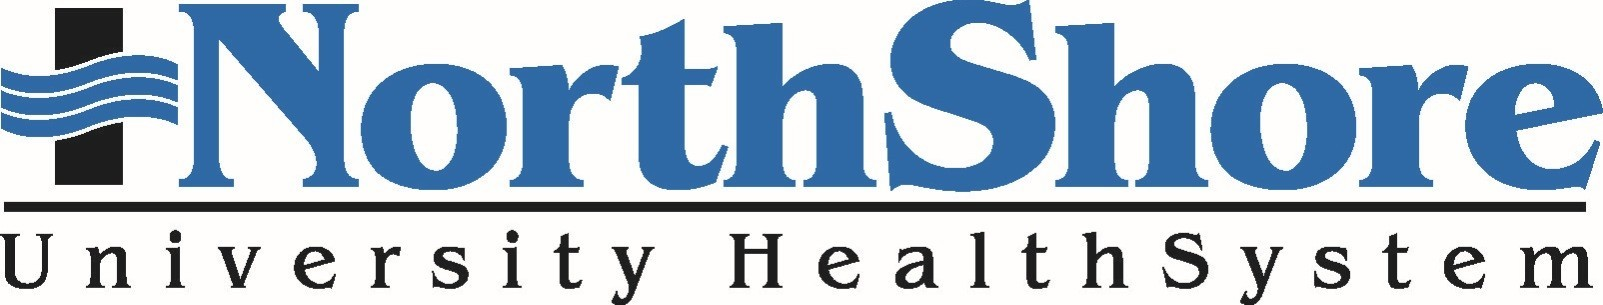 Northshore University Healthsystem Named A Top 100 Hospital For A Record 16th Time Highland Park News